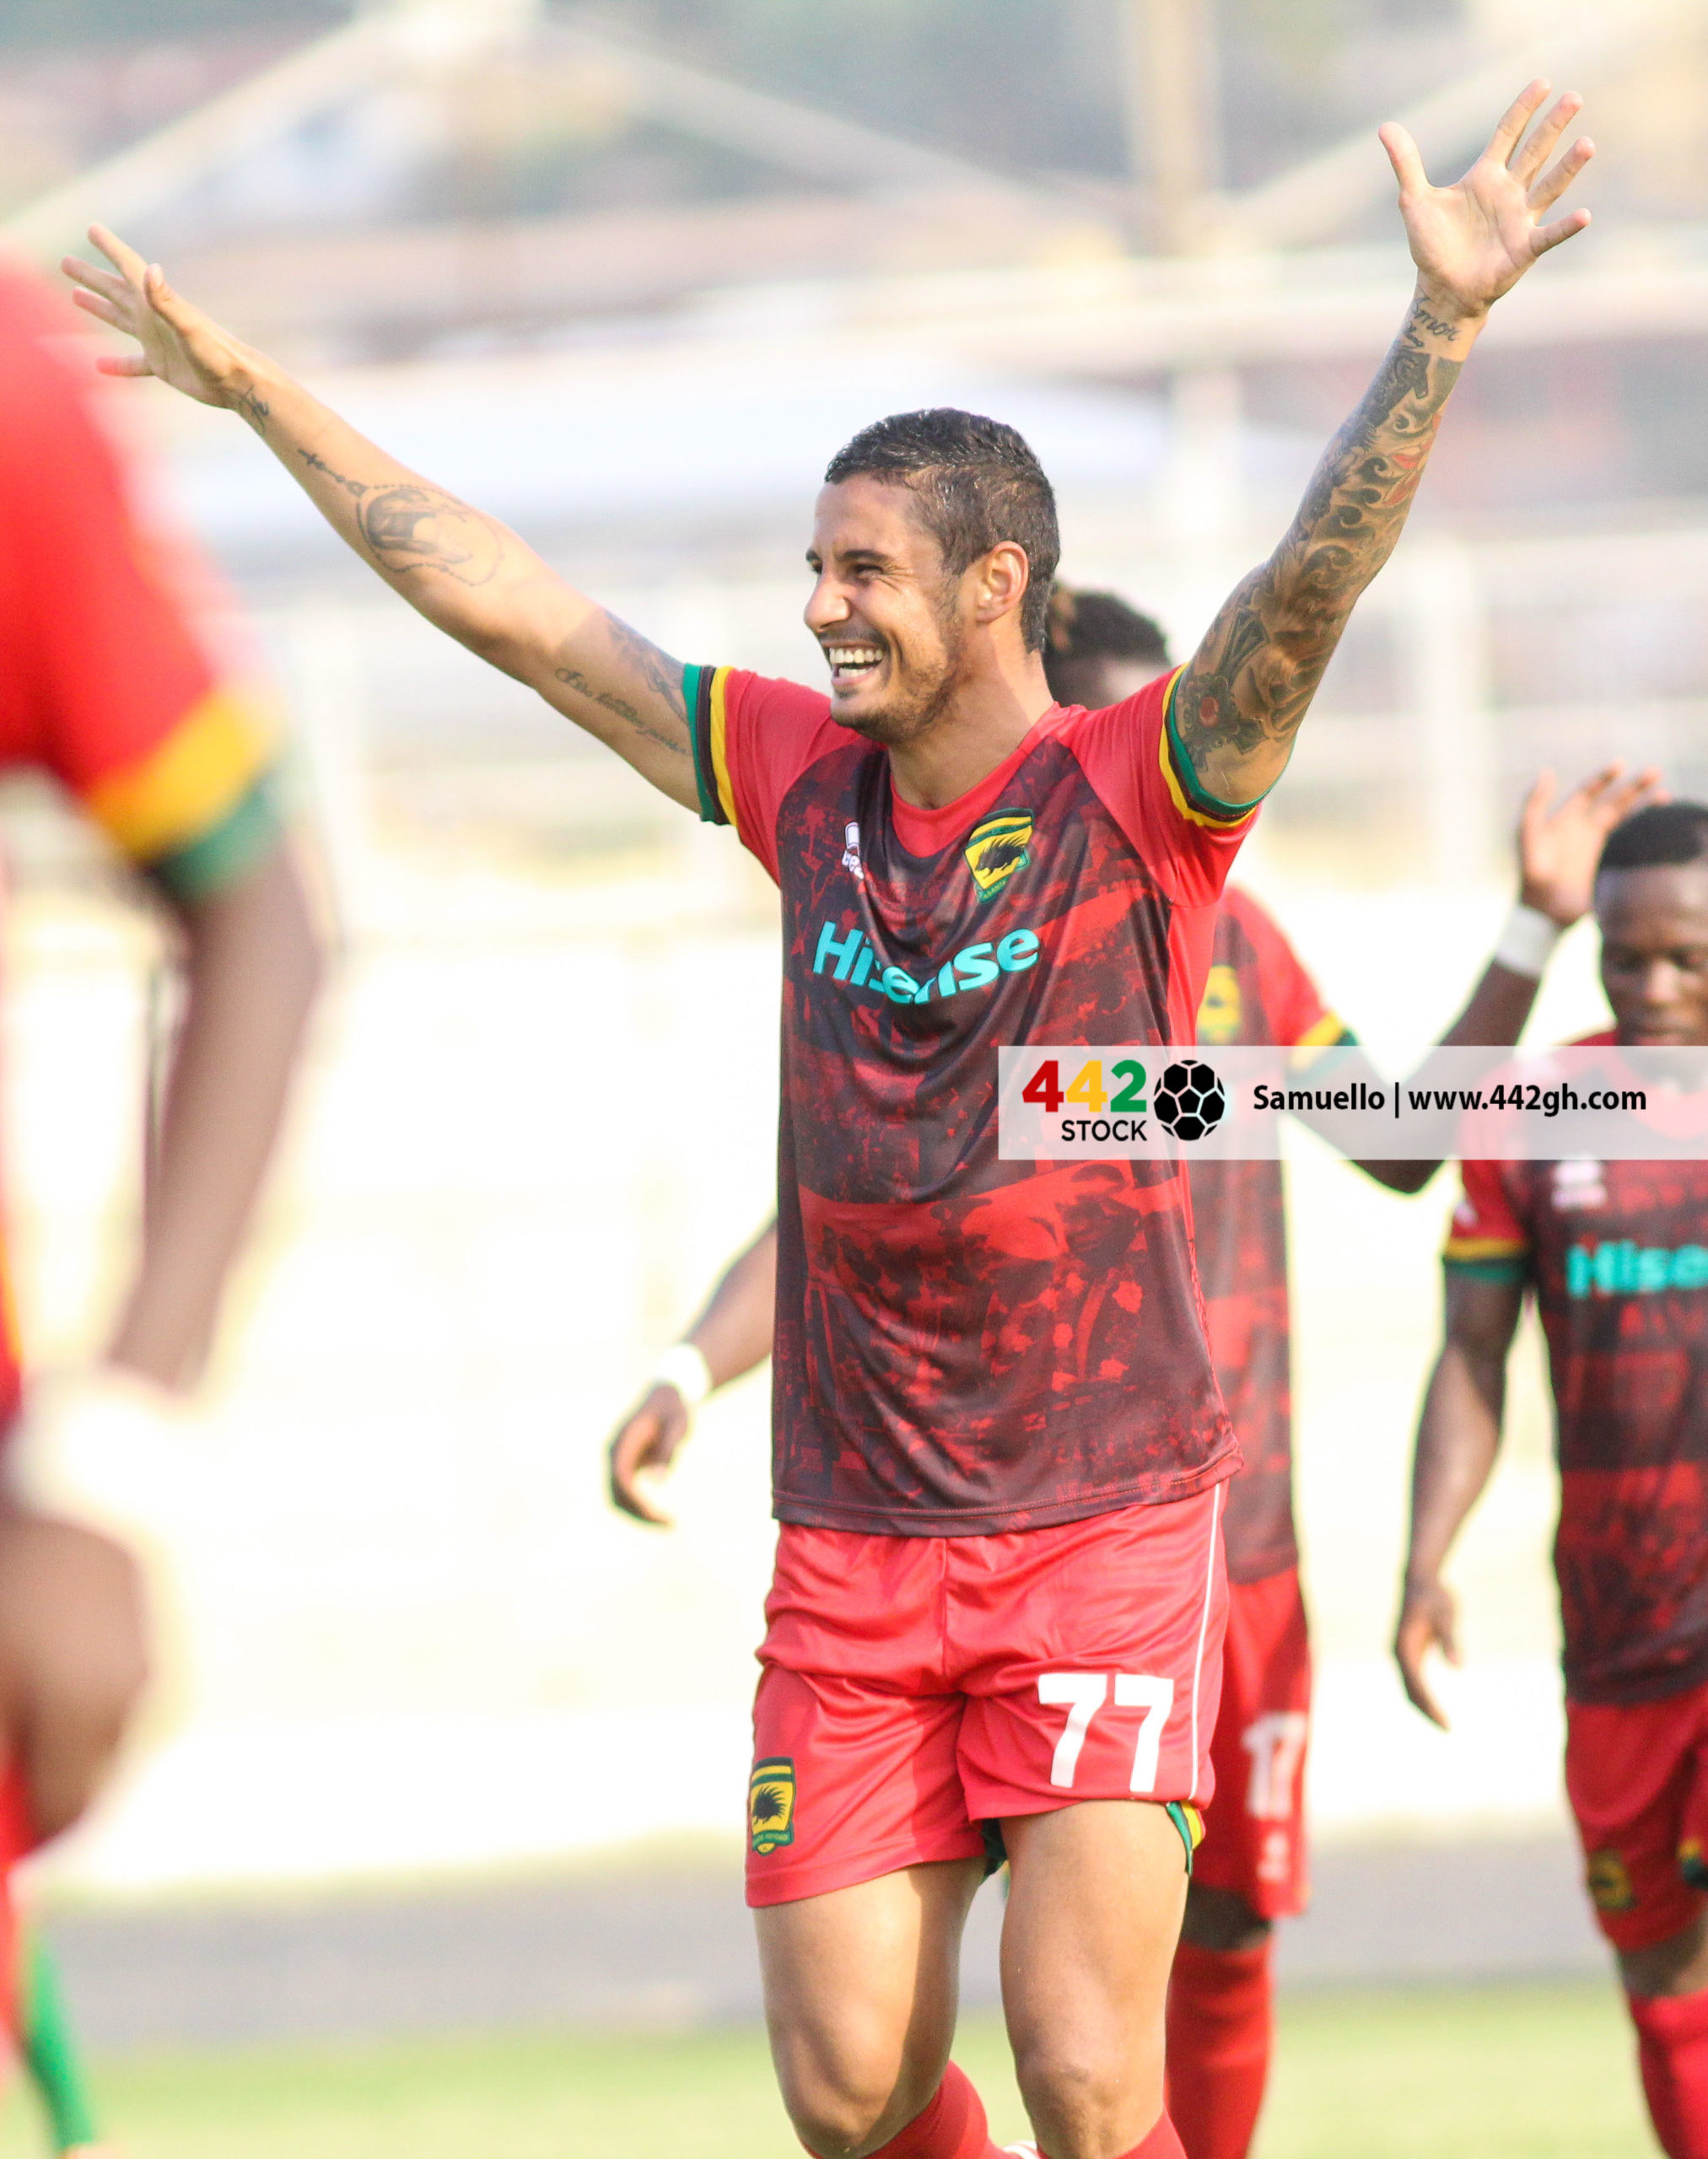 IMG 7483 scaled - PICTURE SPECIAL: Michael Vinicius' First Appearance In A Kotoko Shirt Against Bechem United